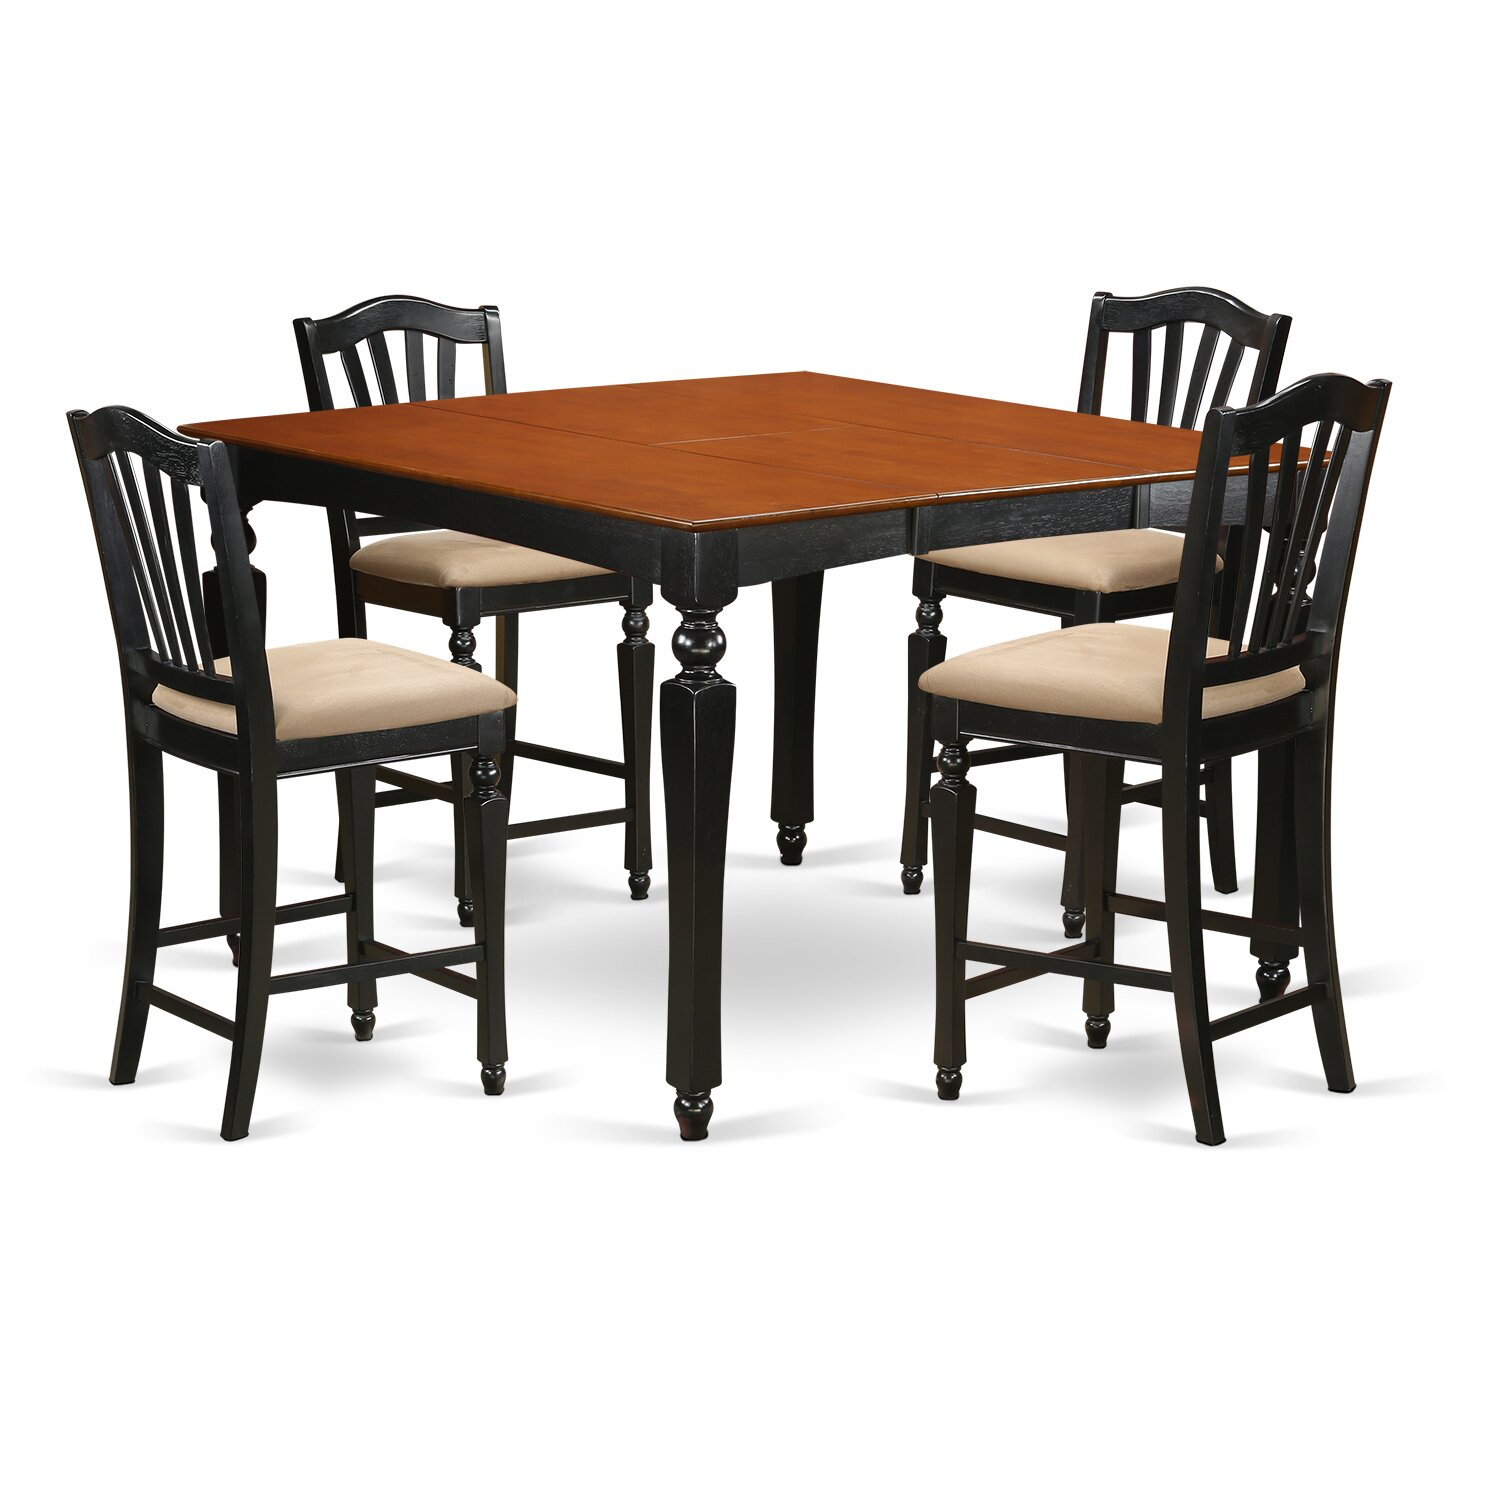 chelsea 5 piece dining set cherry finish download